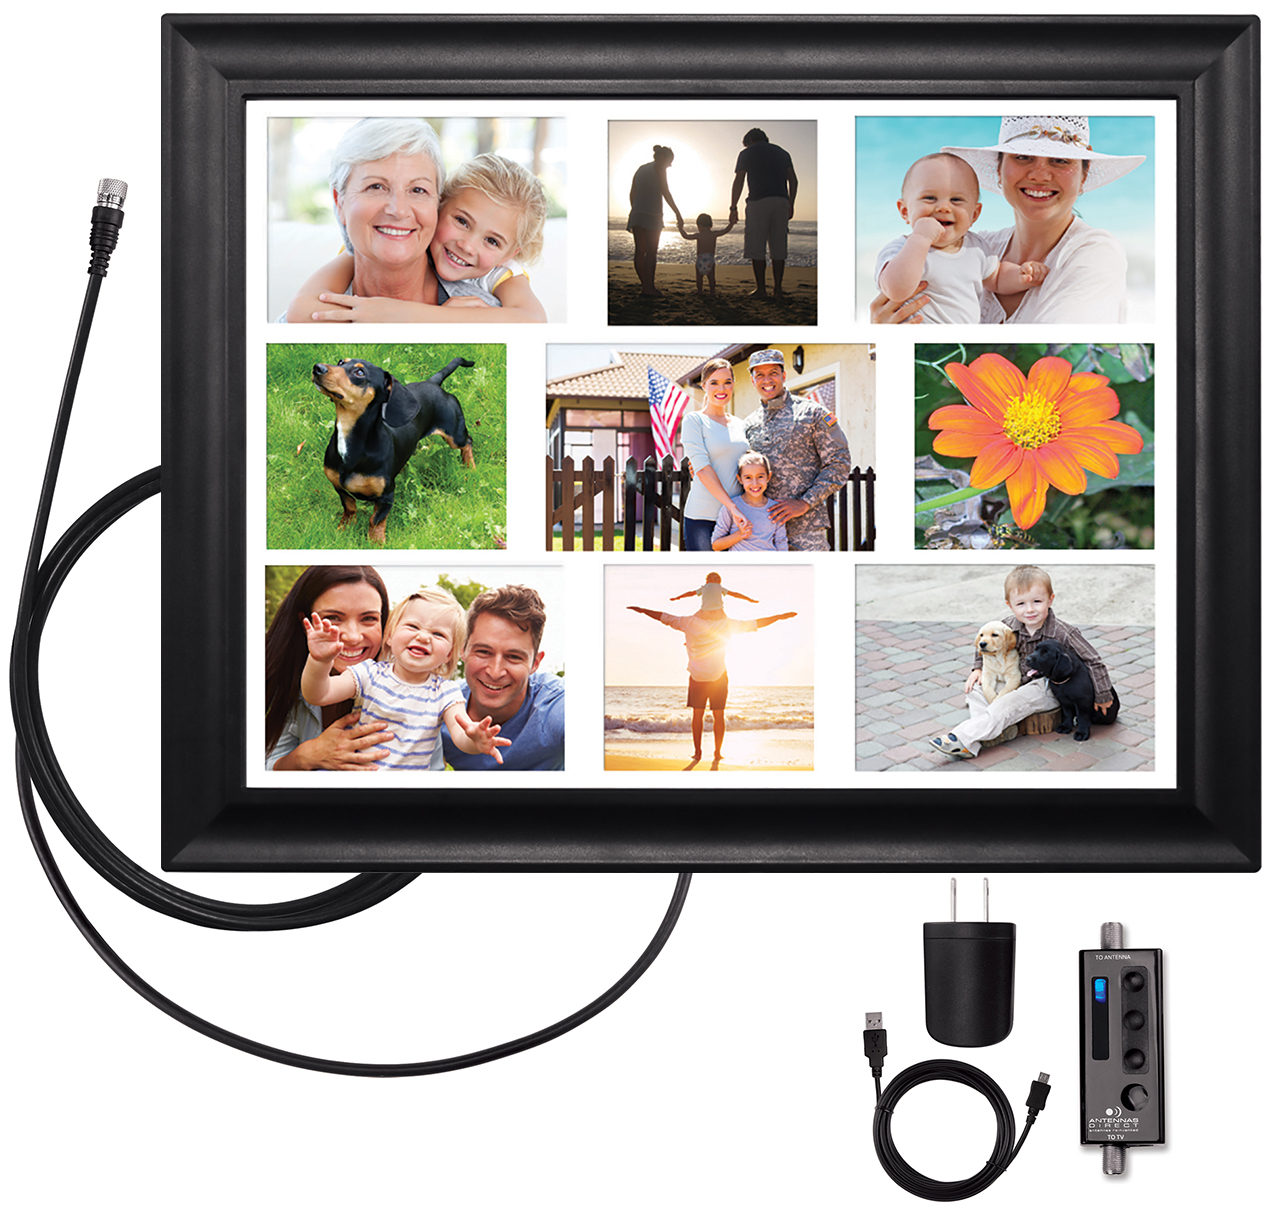 https://www.antennasdirect.com - ClearStream VIEW Wall Frame Amplified Indoor HDTV Antenna 39.99 USD